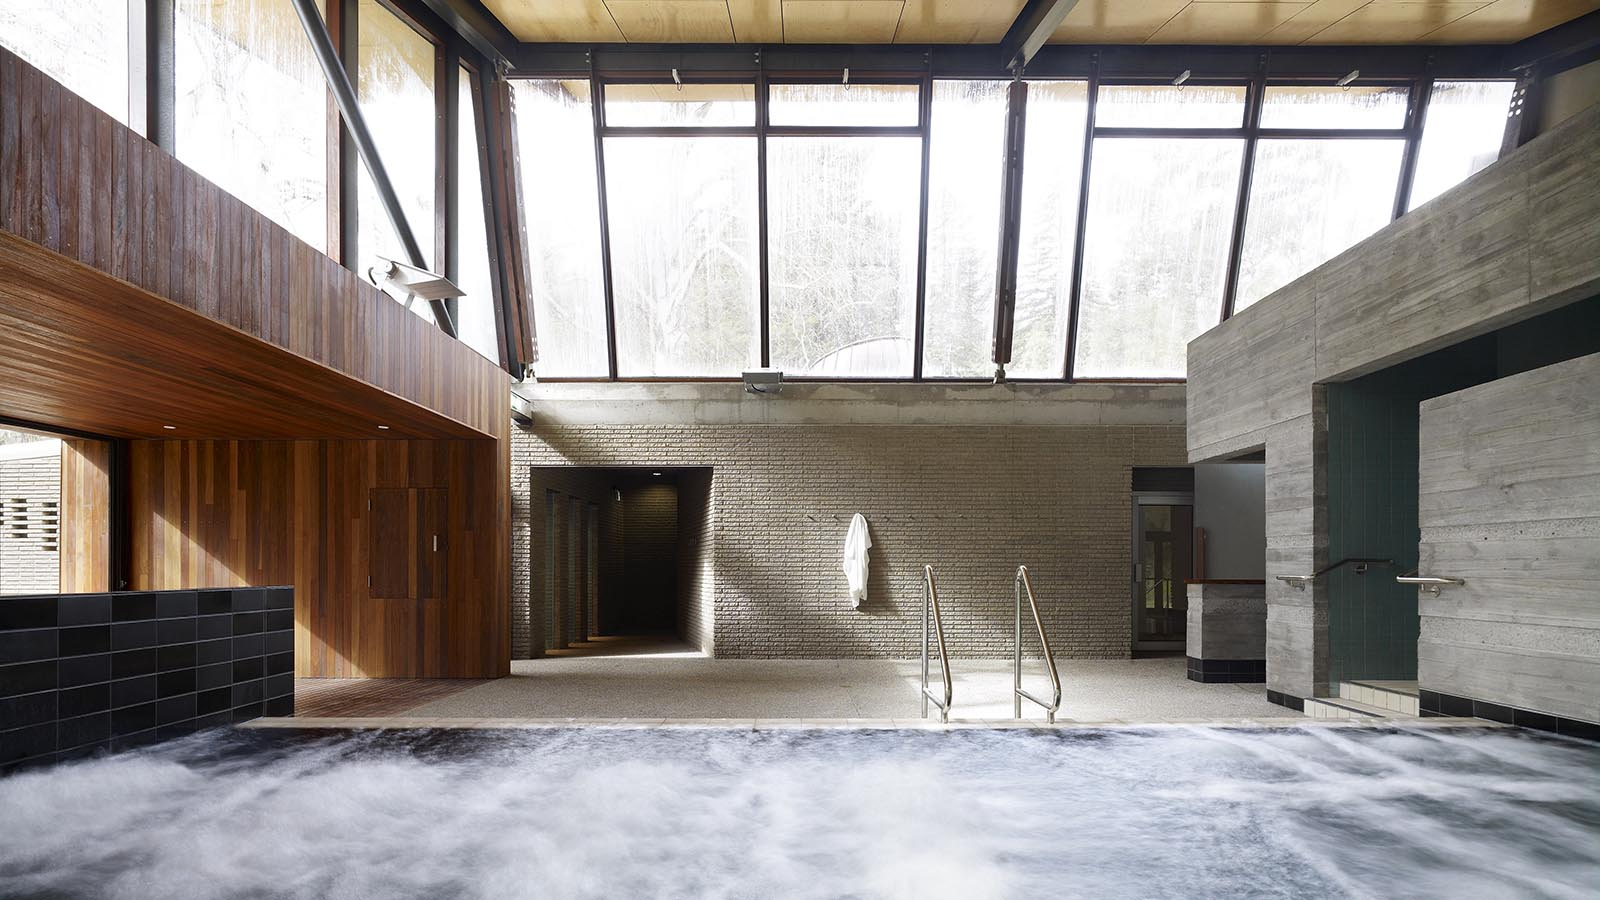 Hepburn Bathhouse and Spa, Daylesford and the Macedon Ranges, Victoria, Australia